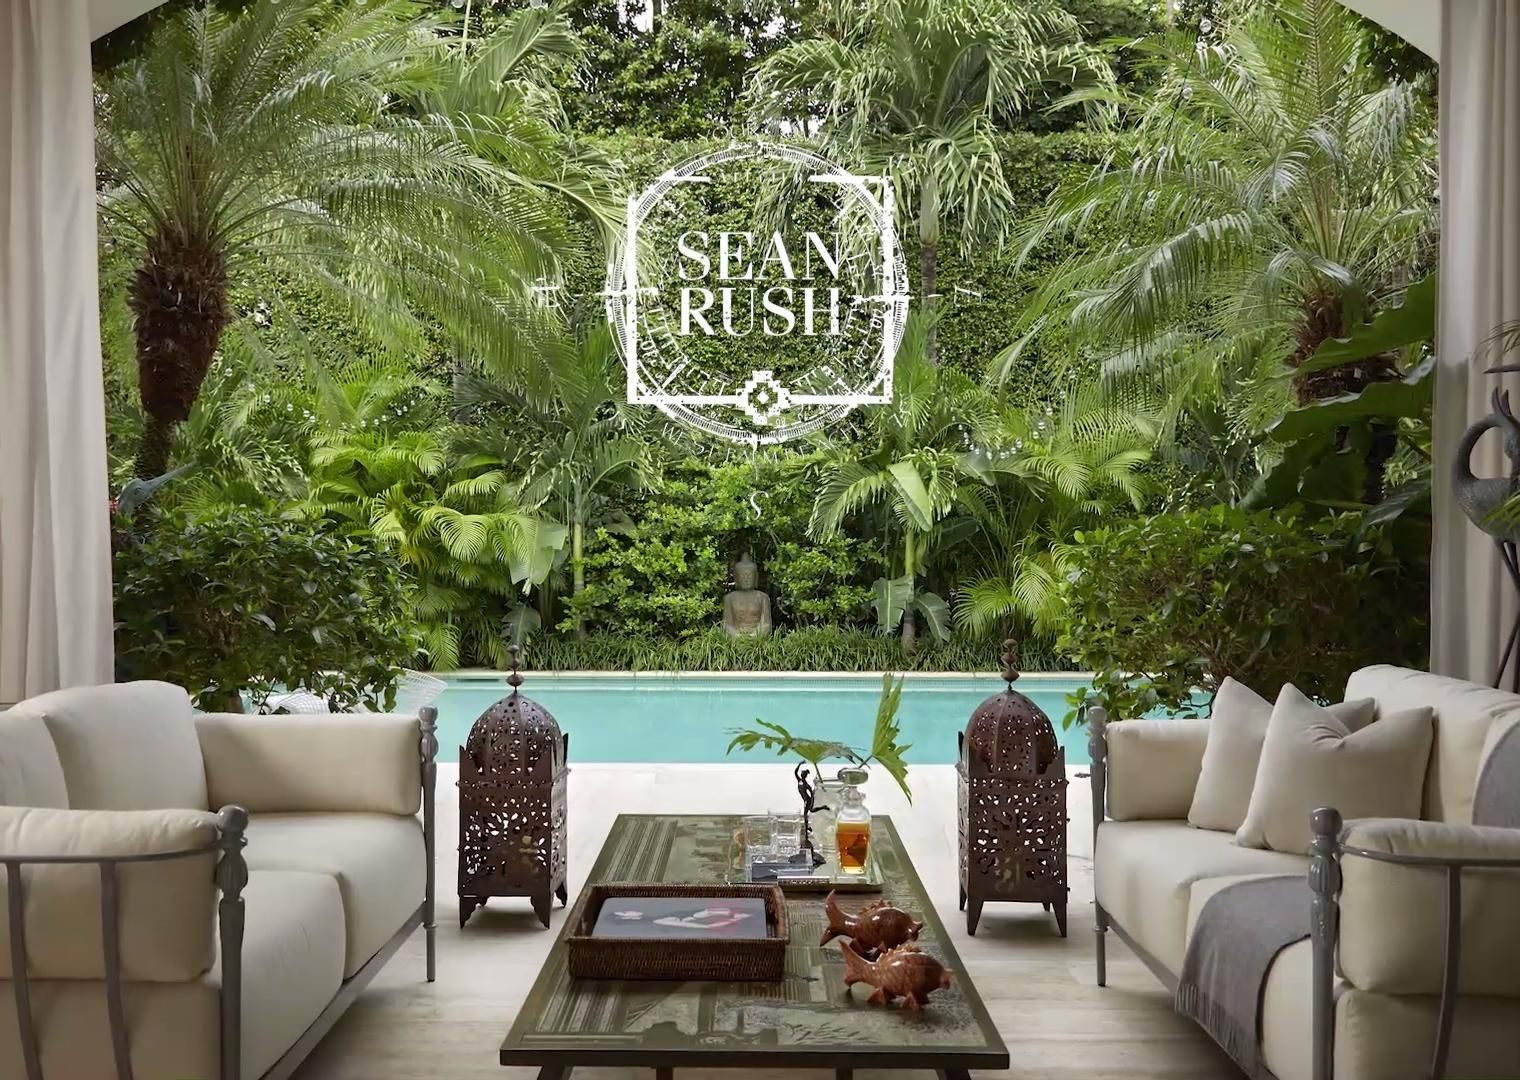 The Art of Outdoor Living (Video) . . . . #home #pooldesign #gardendesign #outdoorlivingroom #outdoorliving #homedetails #interiordesign #interiors #design #designer #designinspo #interiordesigner #interiordecorating #michaeltaylorcollections #morocco #moroccan #designmatters #decor #homedecor #moroccandesign #pbdesign #palmbeachdesign #globaldesign #decoratingideas #palmbeachinteriordesigner #westpalmbeach #coastaldesign #nomadic #homes #laverne